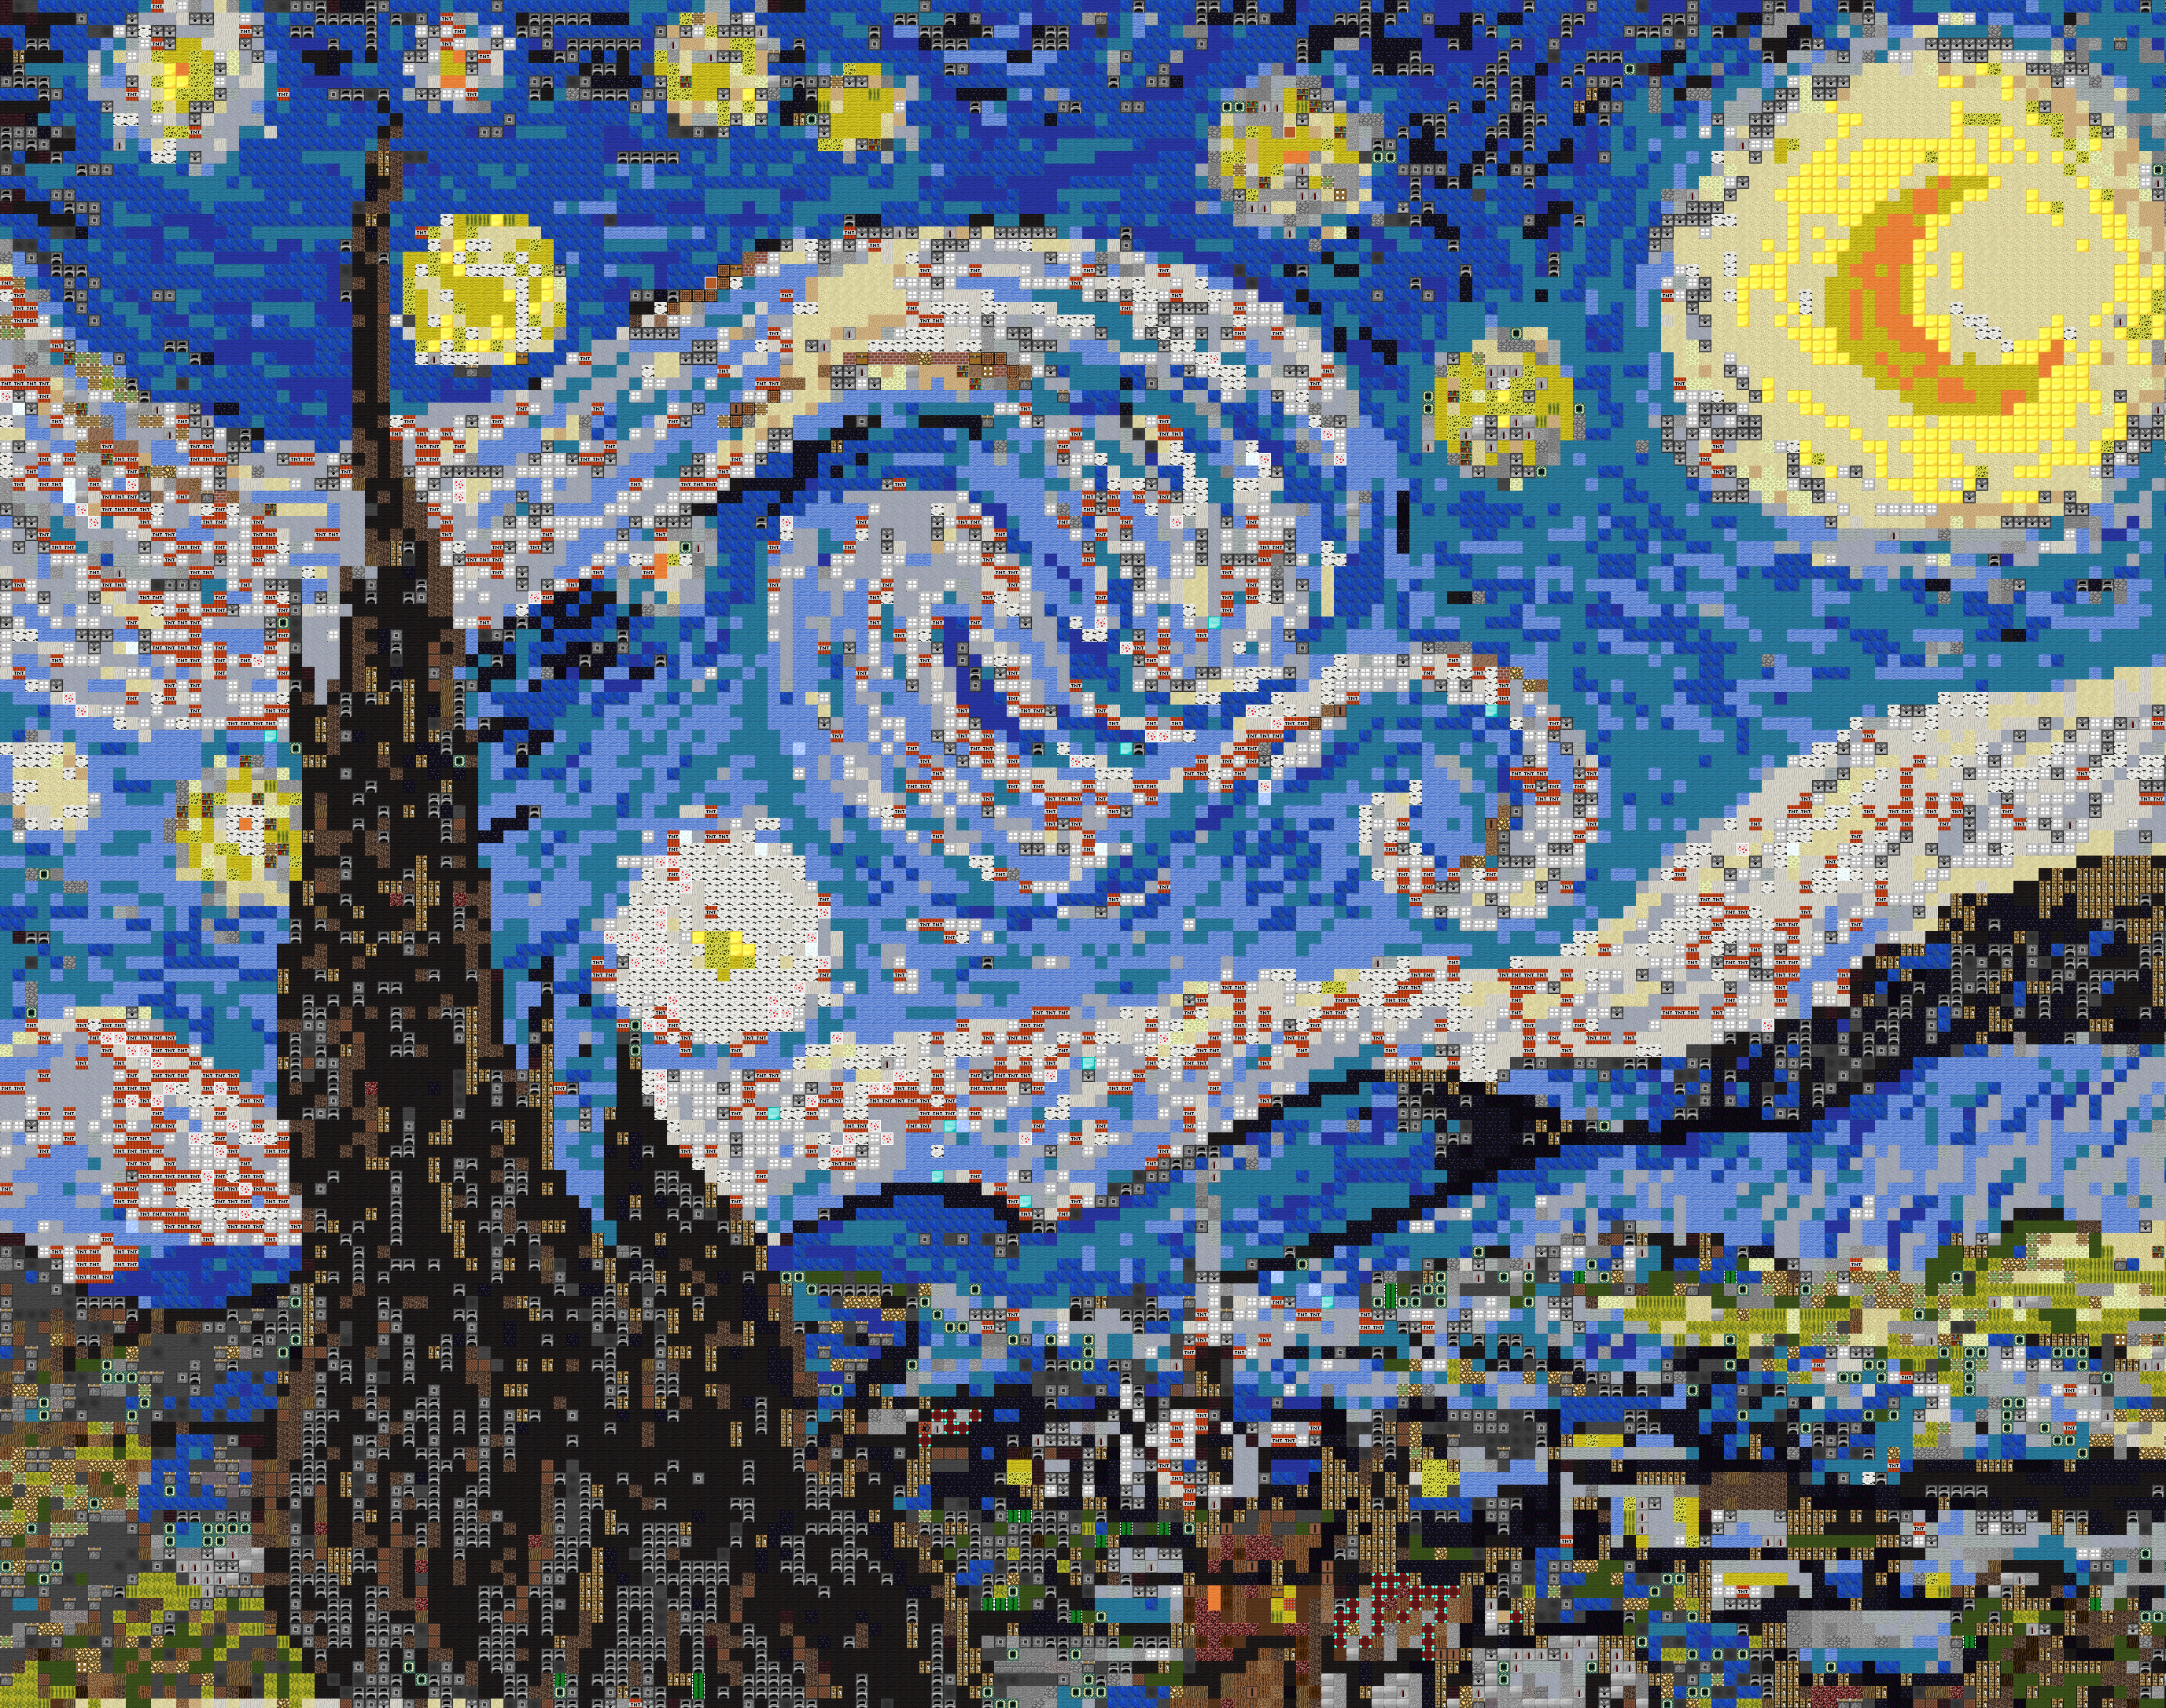 starry_night_minecraft